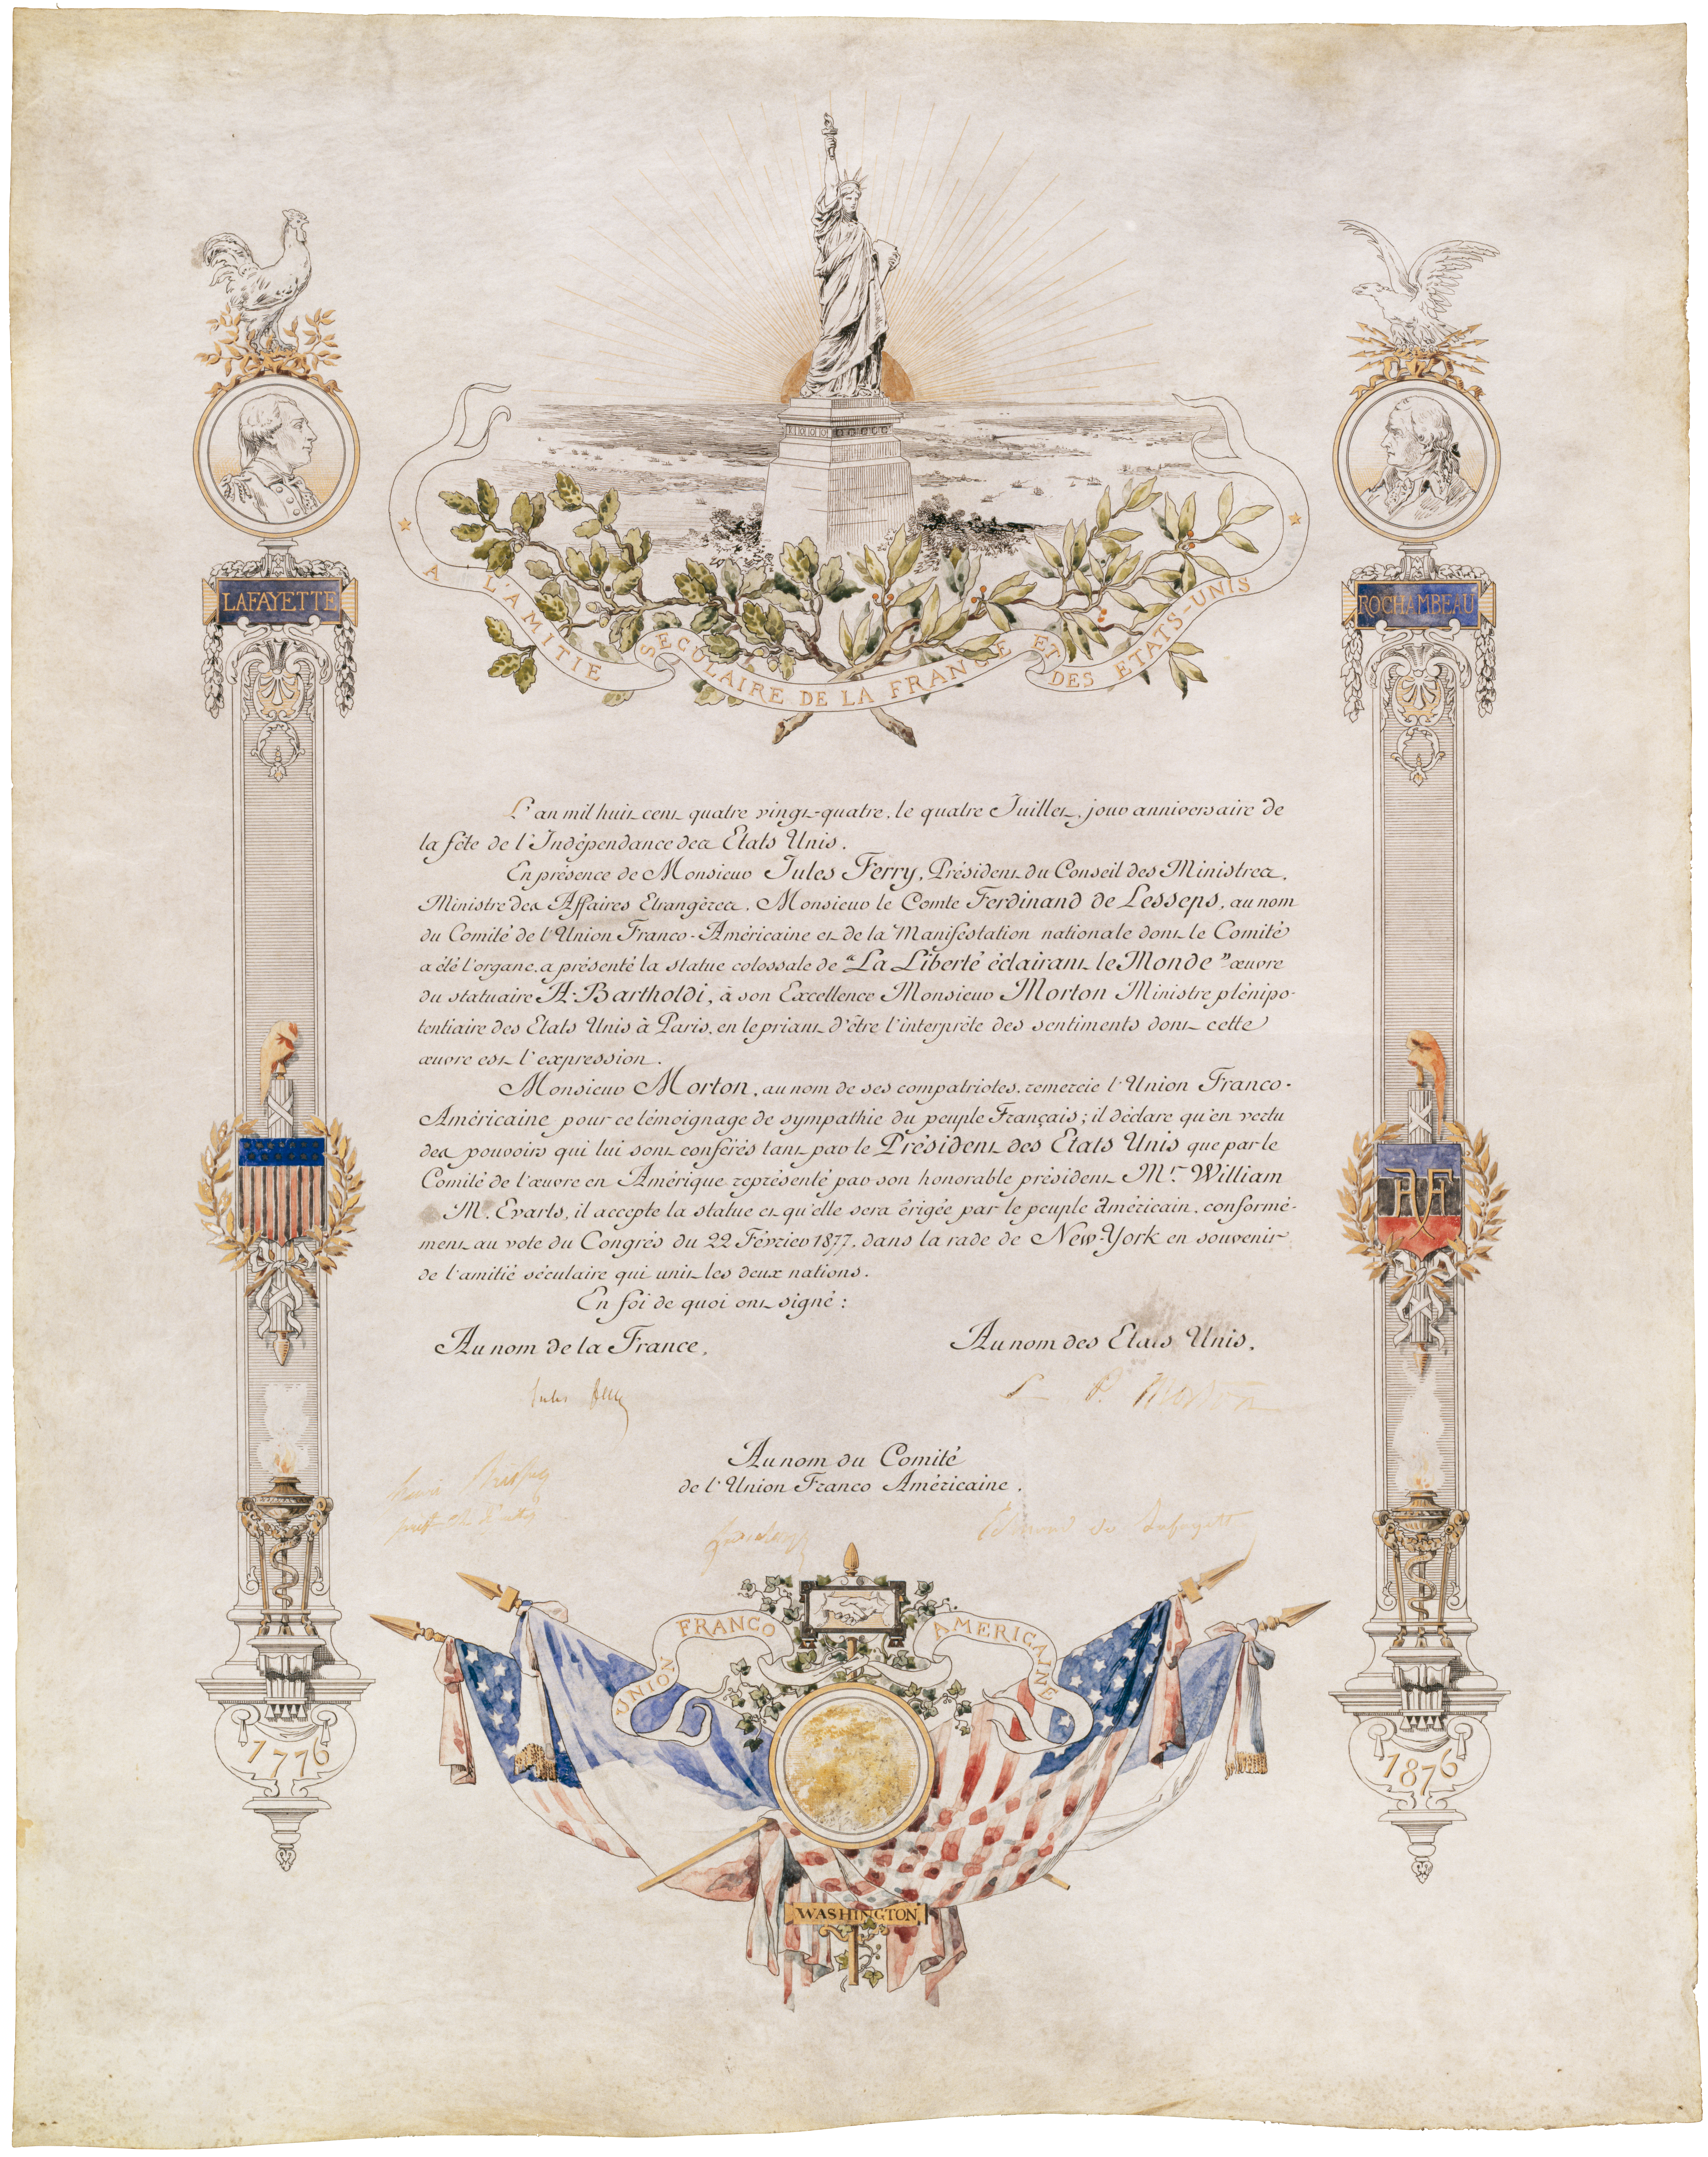 Deed of Gift for the Statue of Liberty